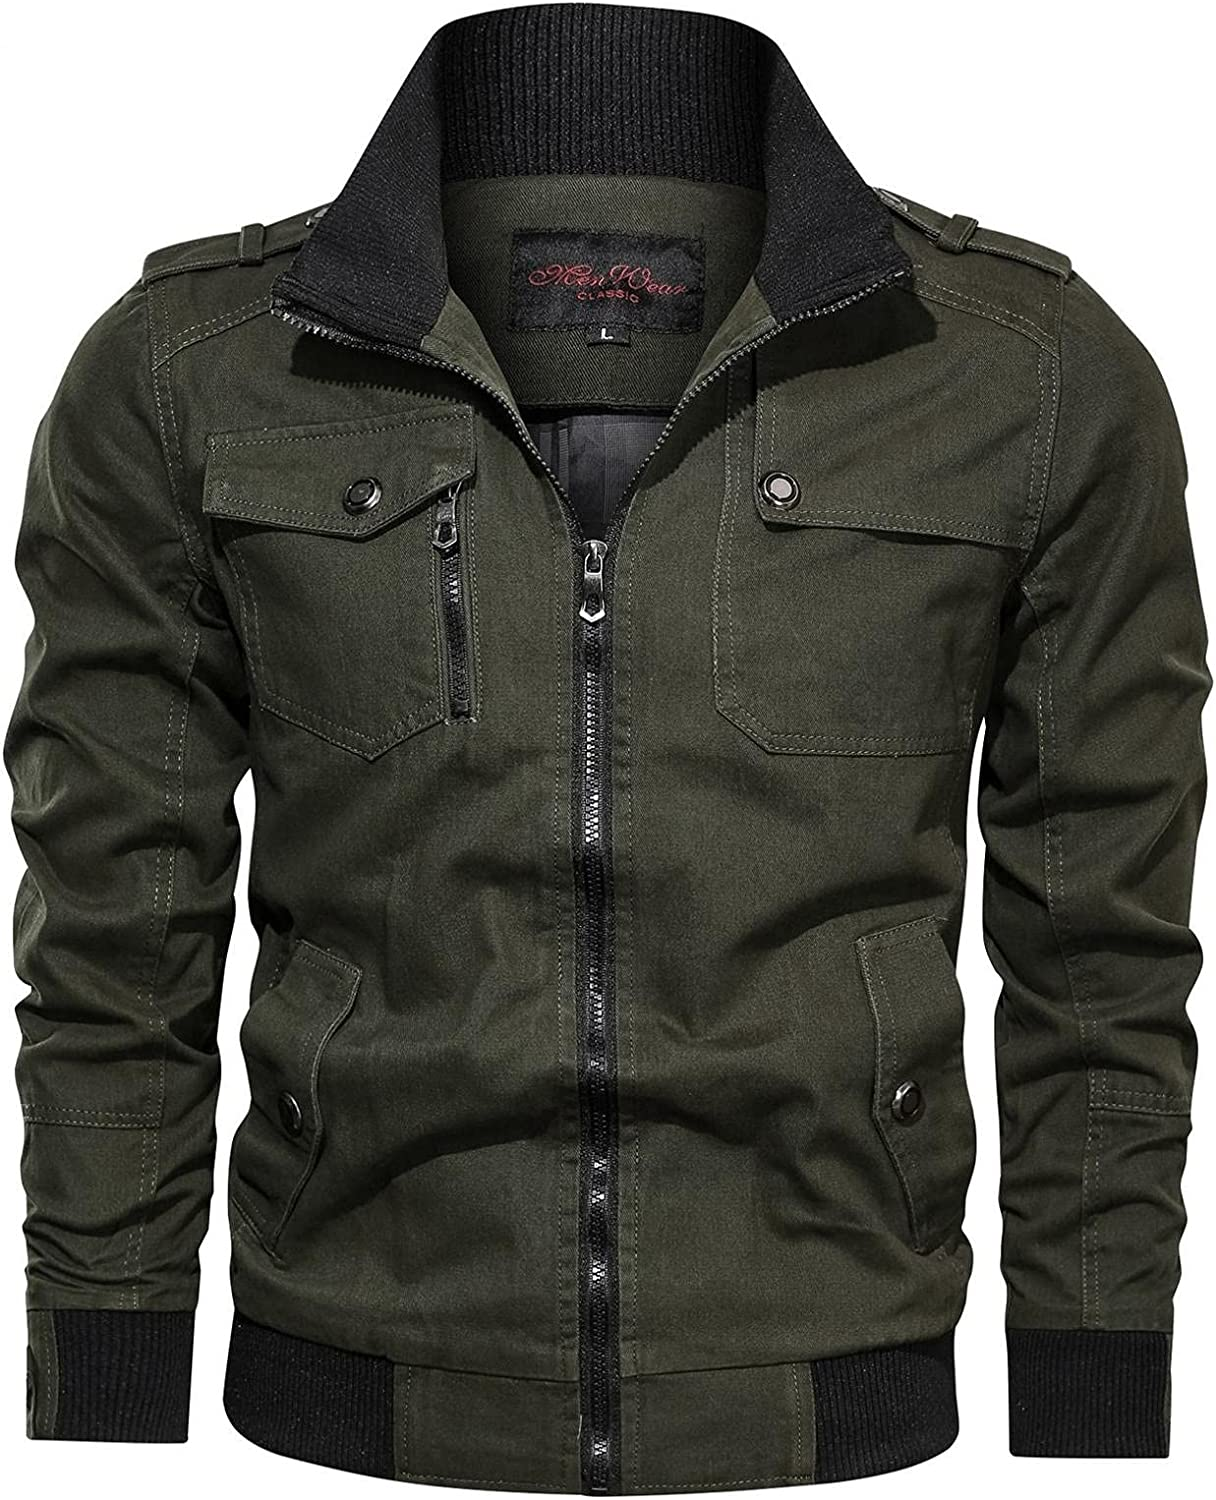 Mens Military Jackets Casual Cotton Solid Coat Zipper Up Lightweight Long Sleeve Windbreaker Outwear Spring